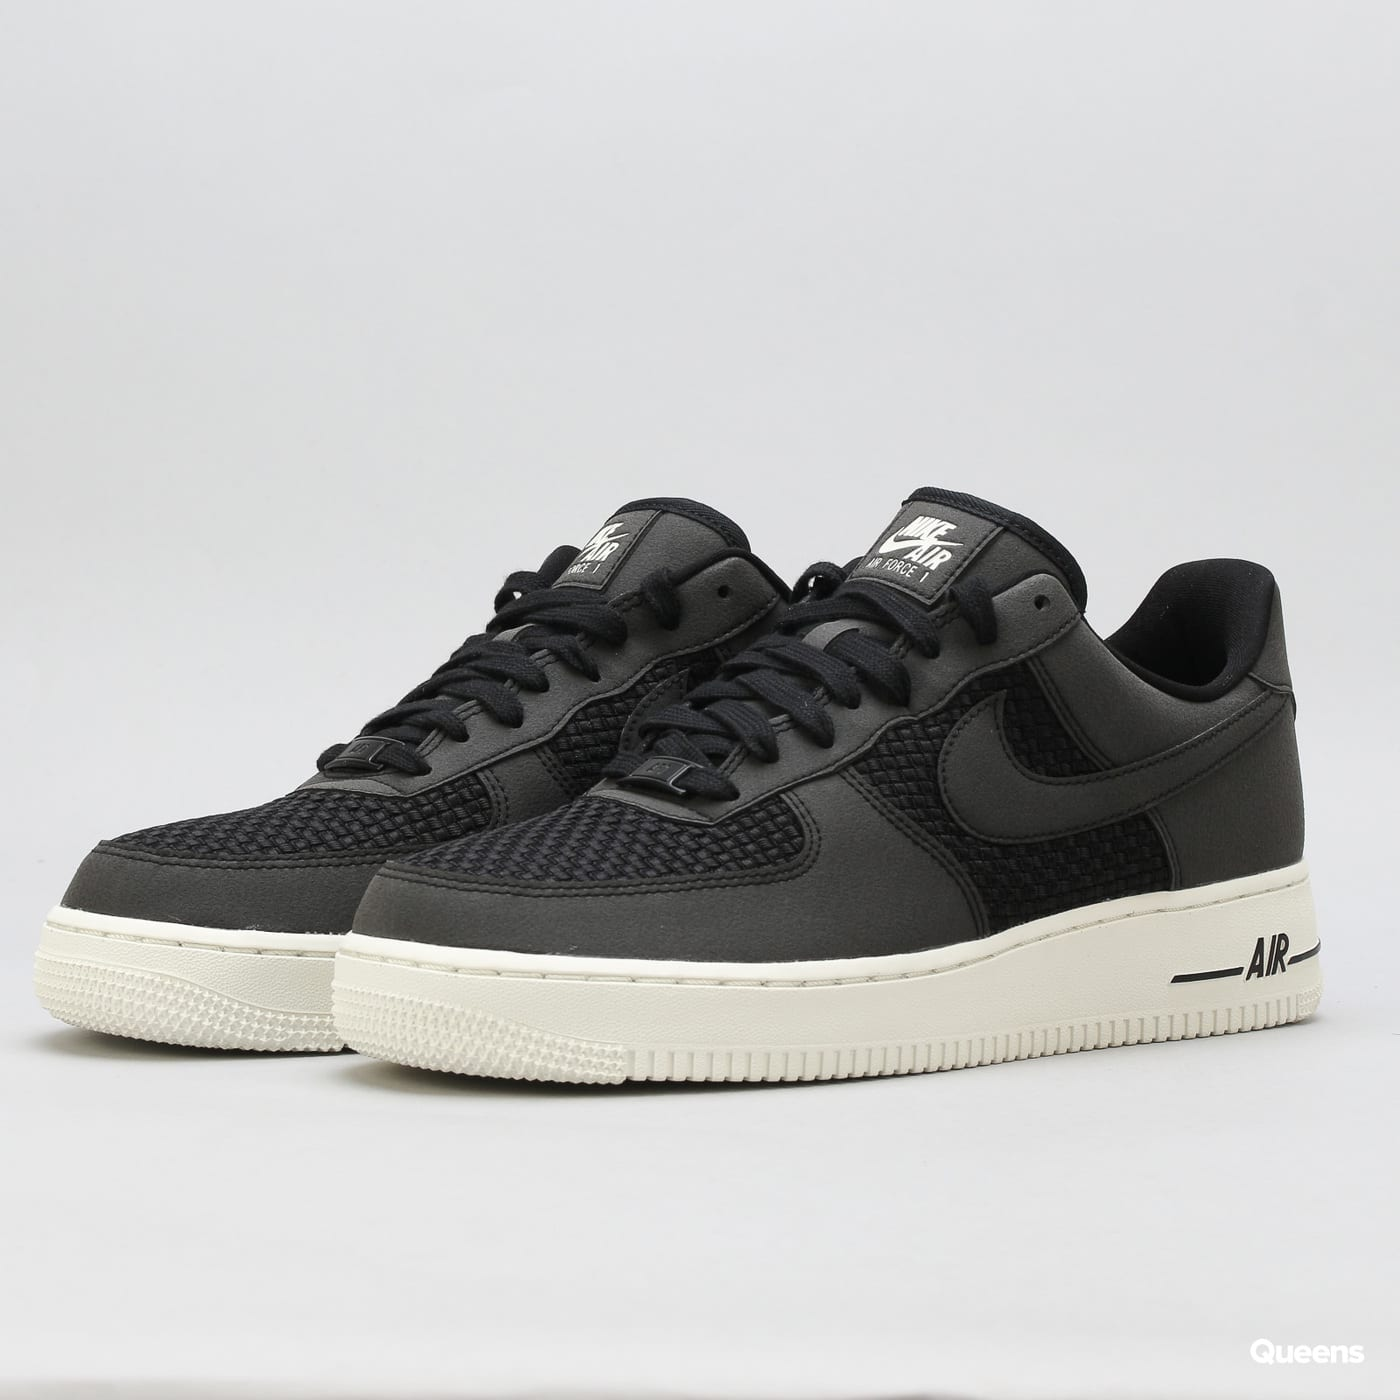 ce199663b40f6 Boty Nike Air Force 1 Lo (AQ8624-001) – Queens ...